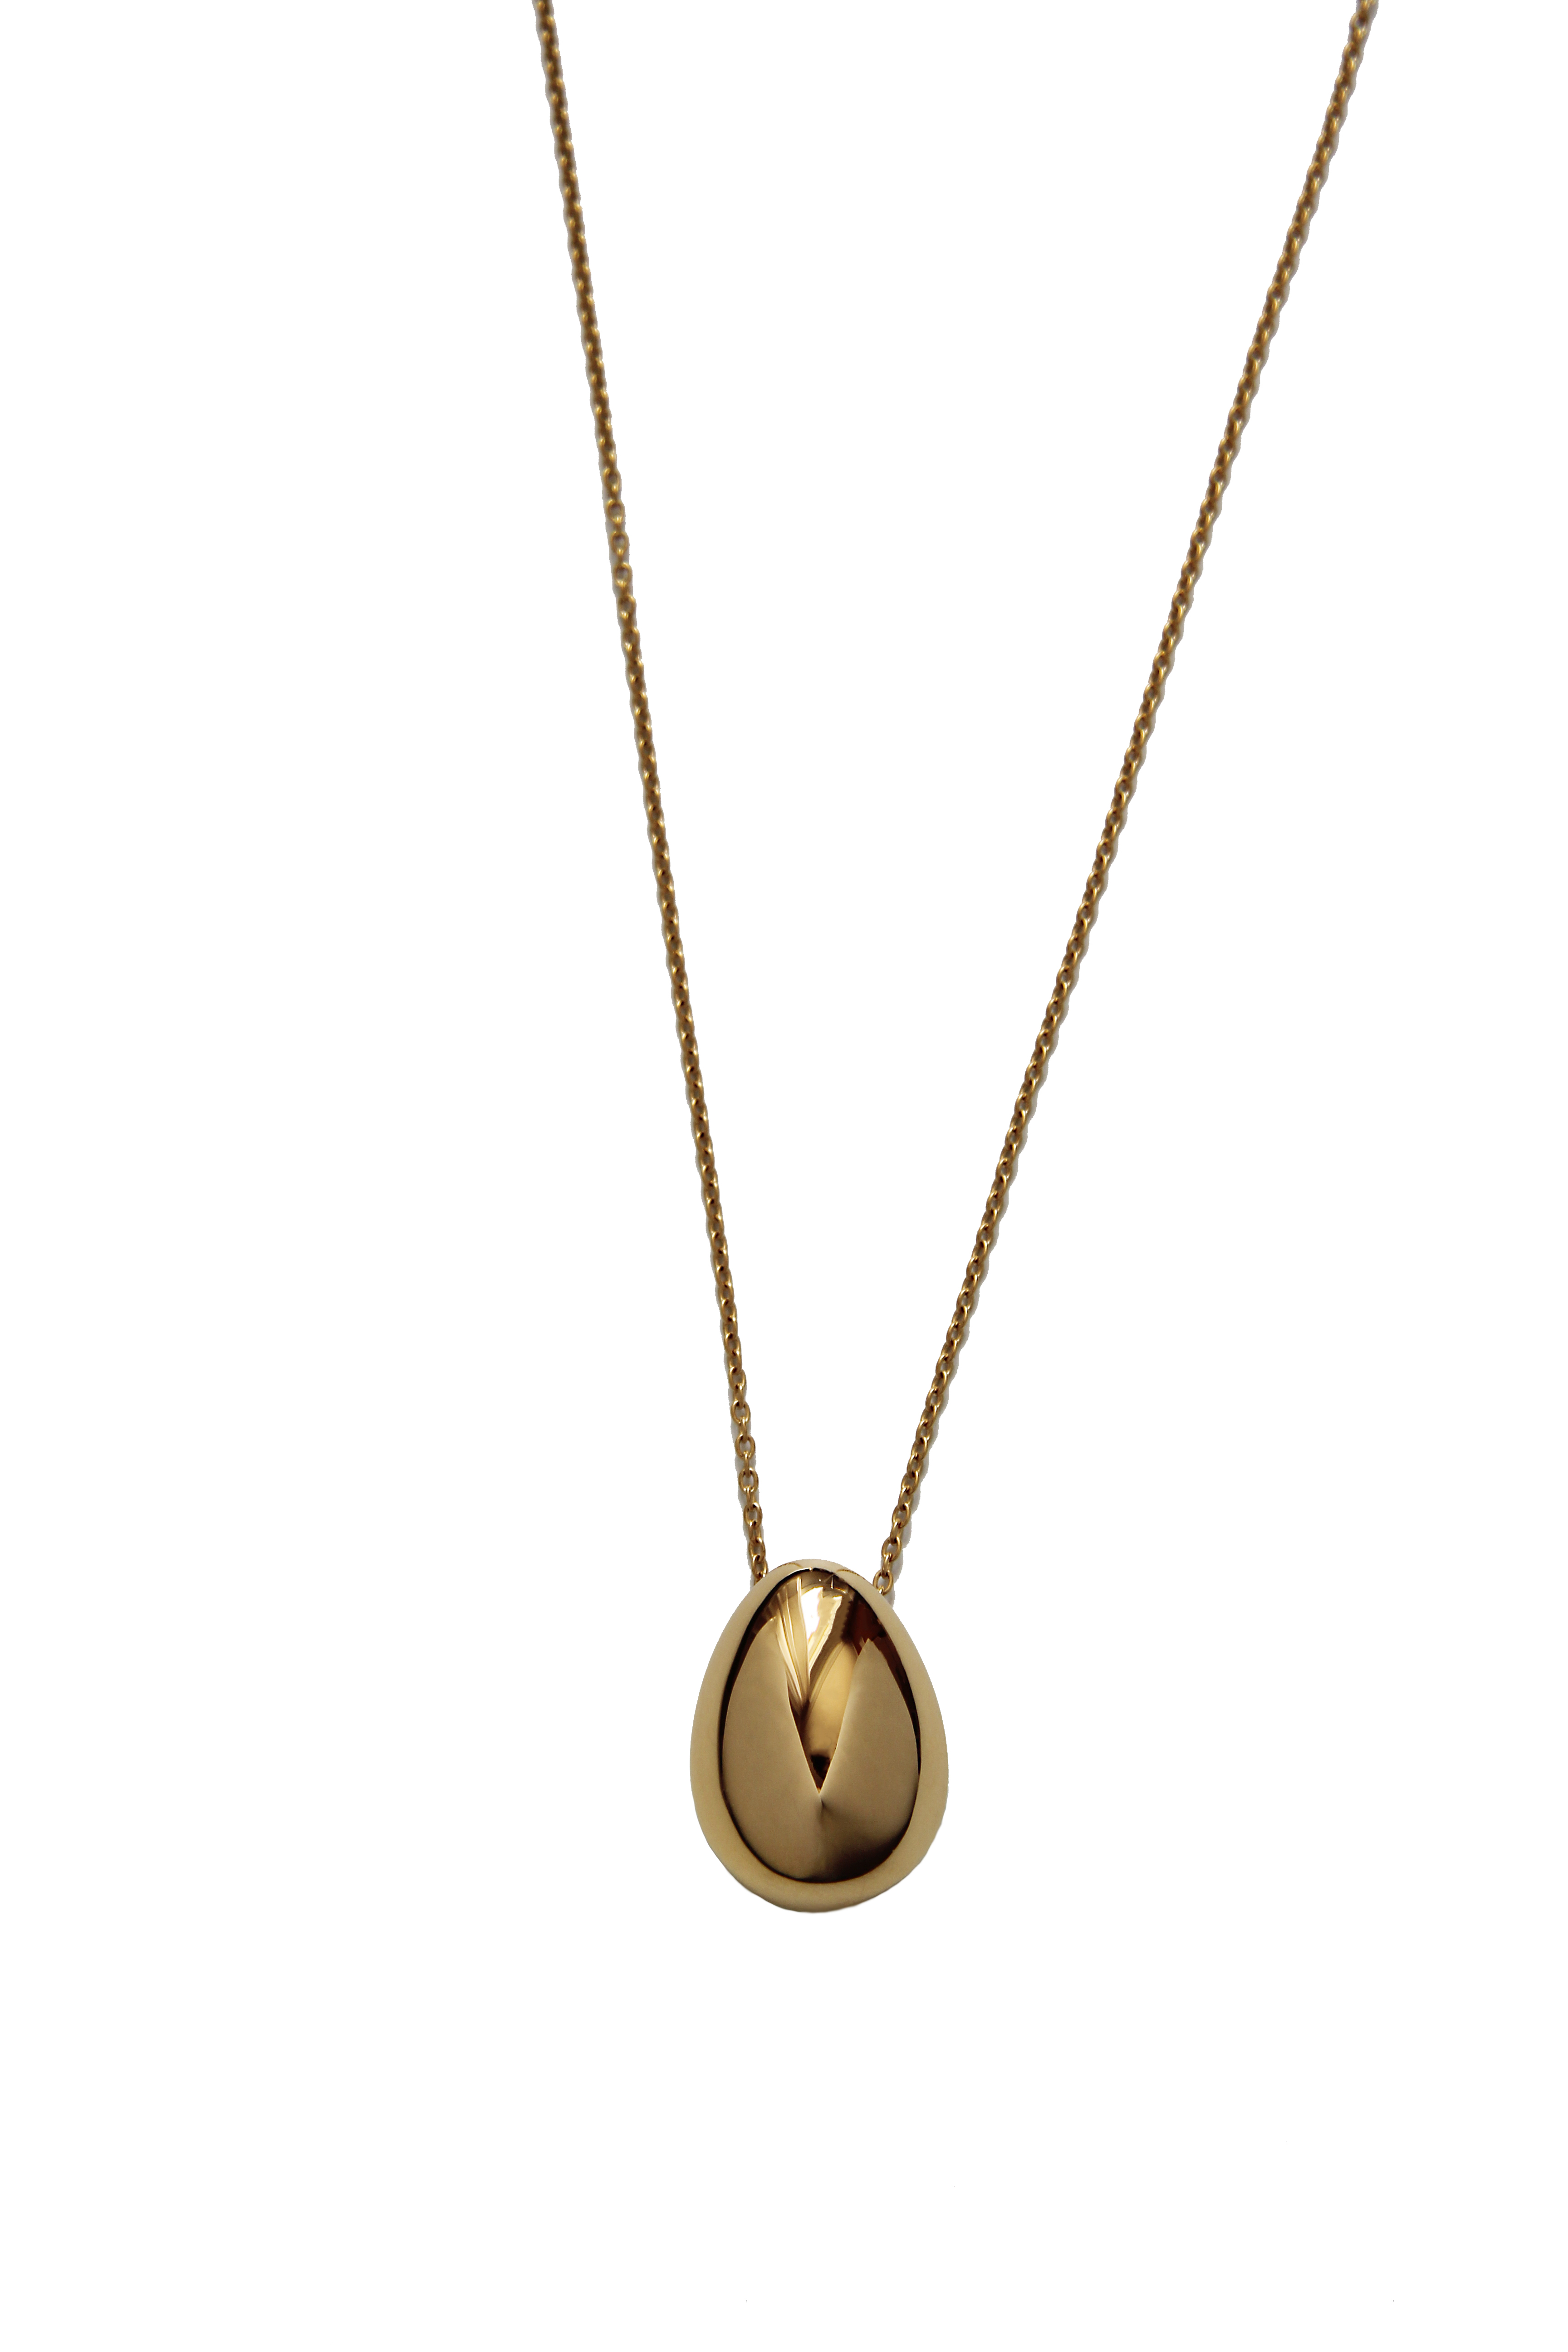 Necklace Uovo by Maramz on curated-crowd.com